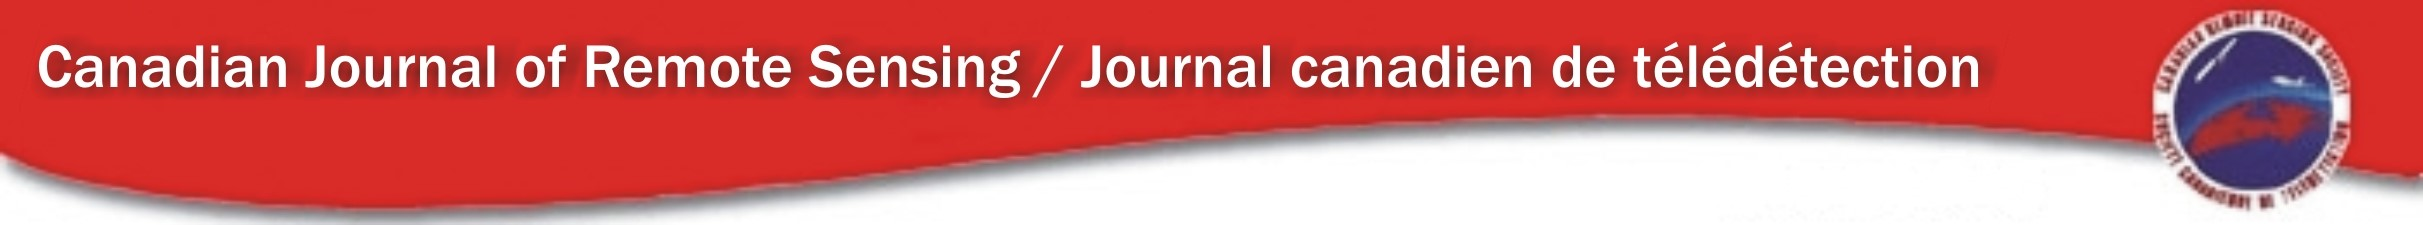 Canadian Journal Remote Sensing